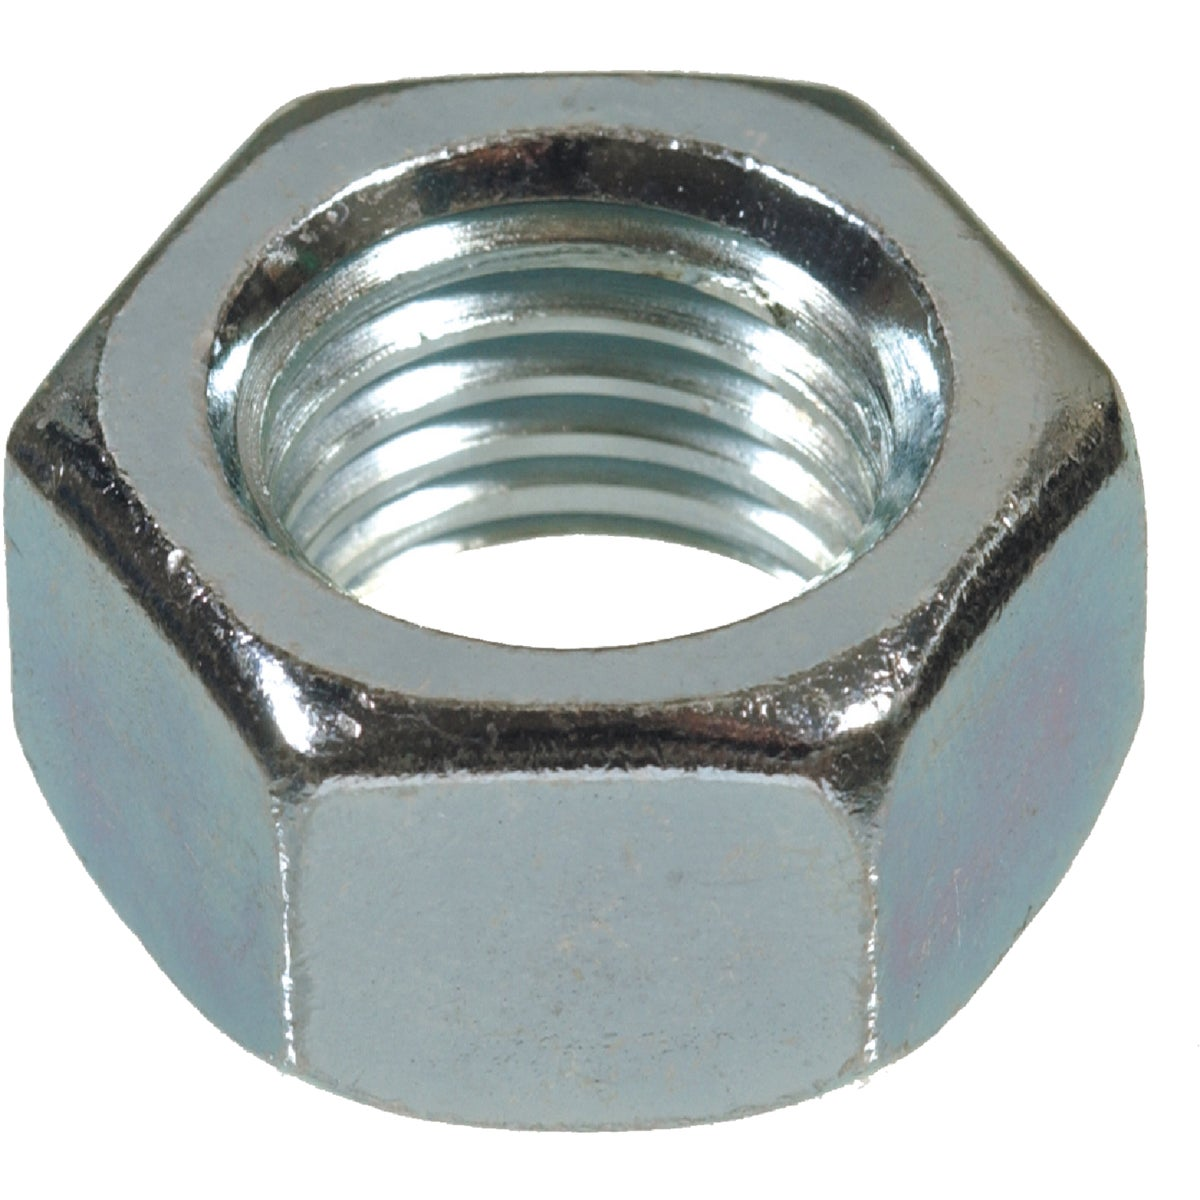 100PC 1/4-20 CRS HEX NUT